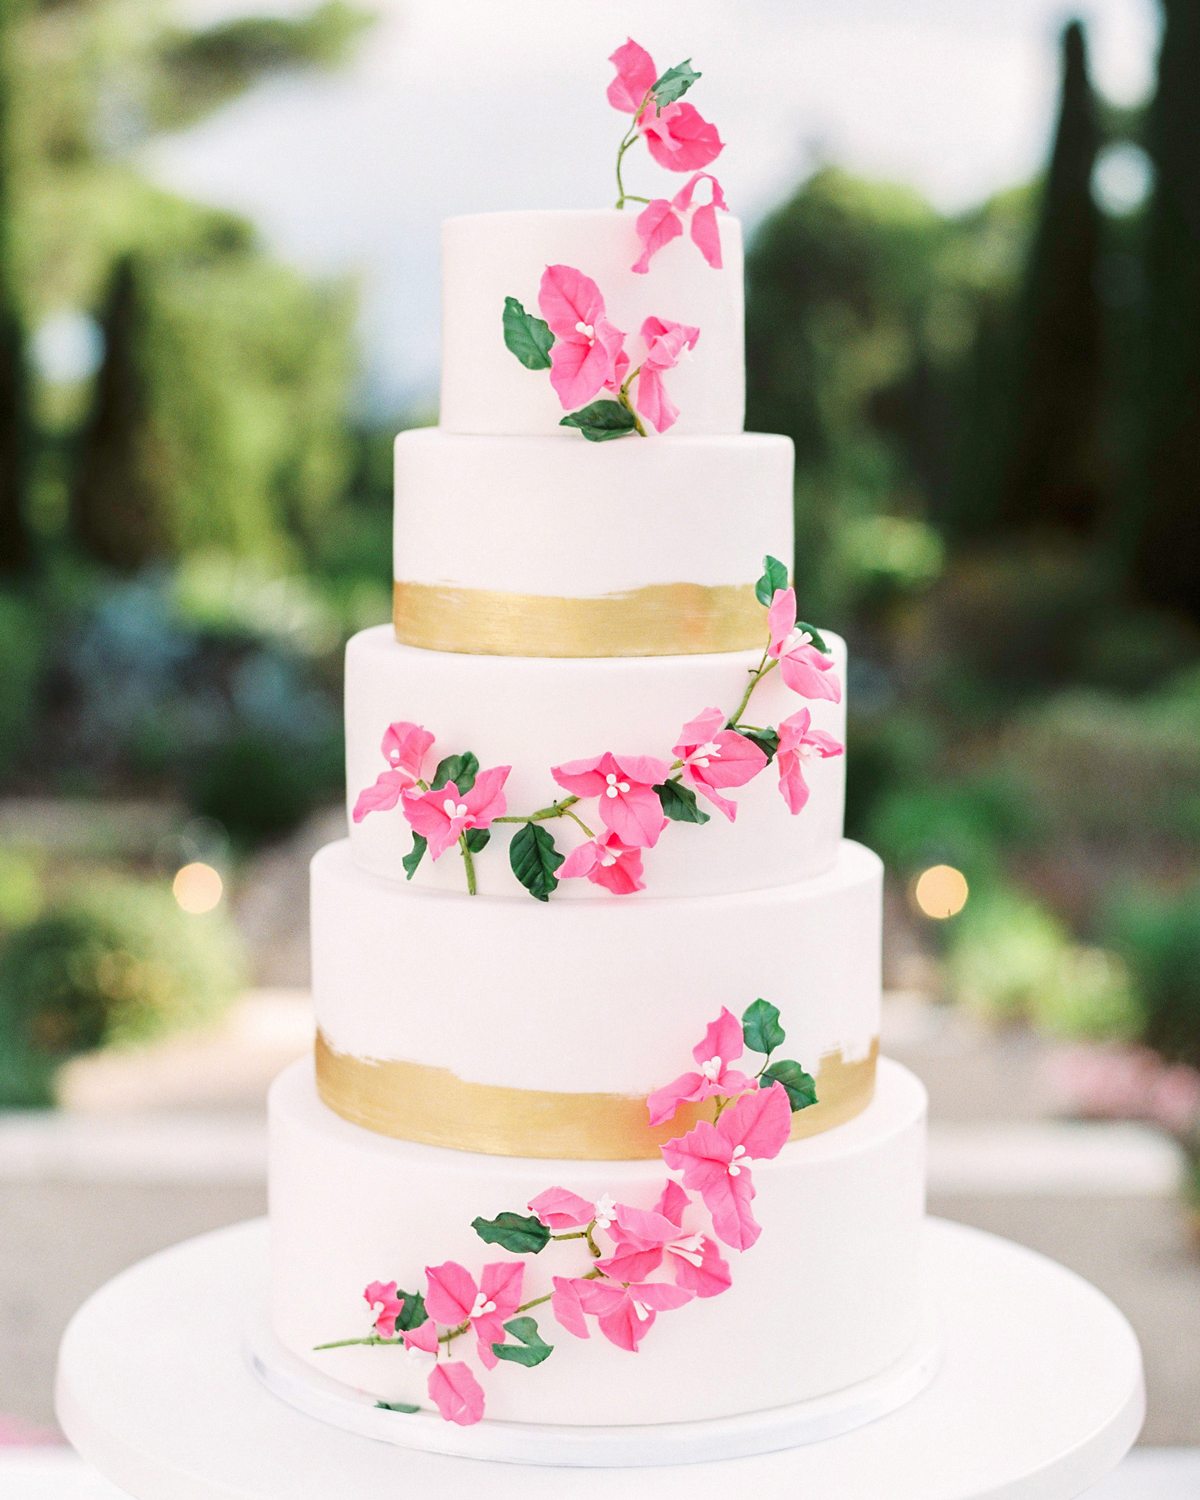 stephanie nikolaus wedding cake